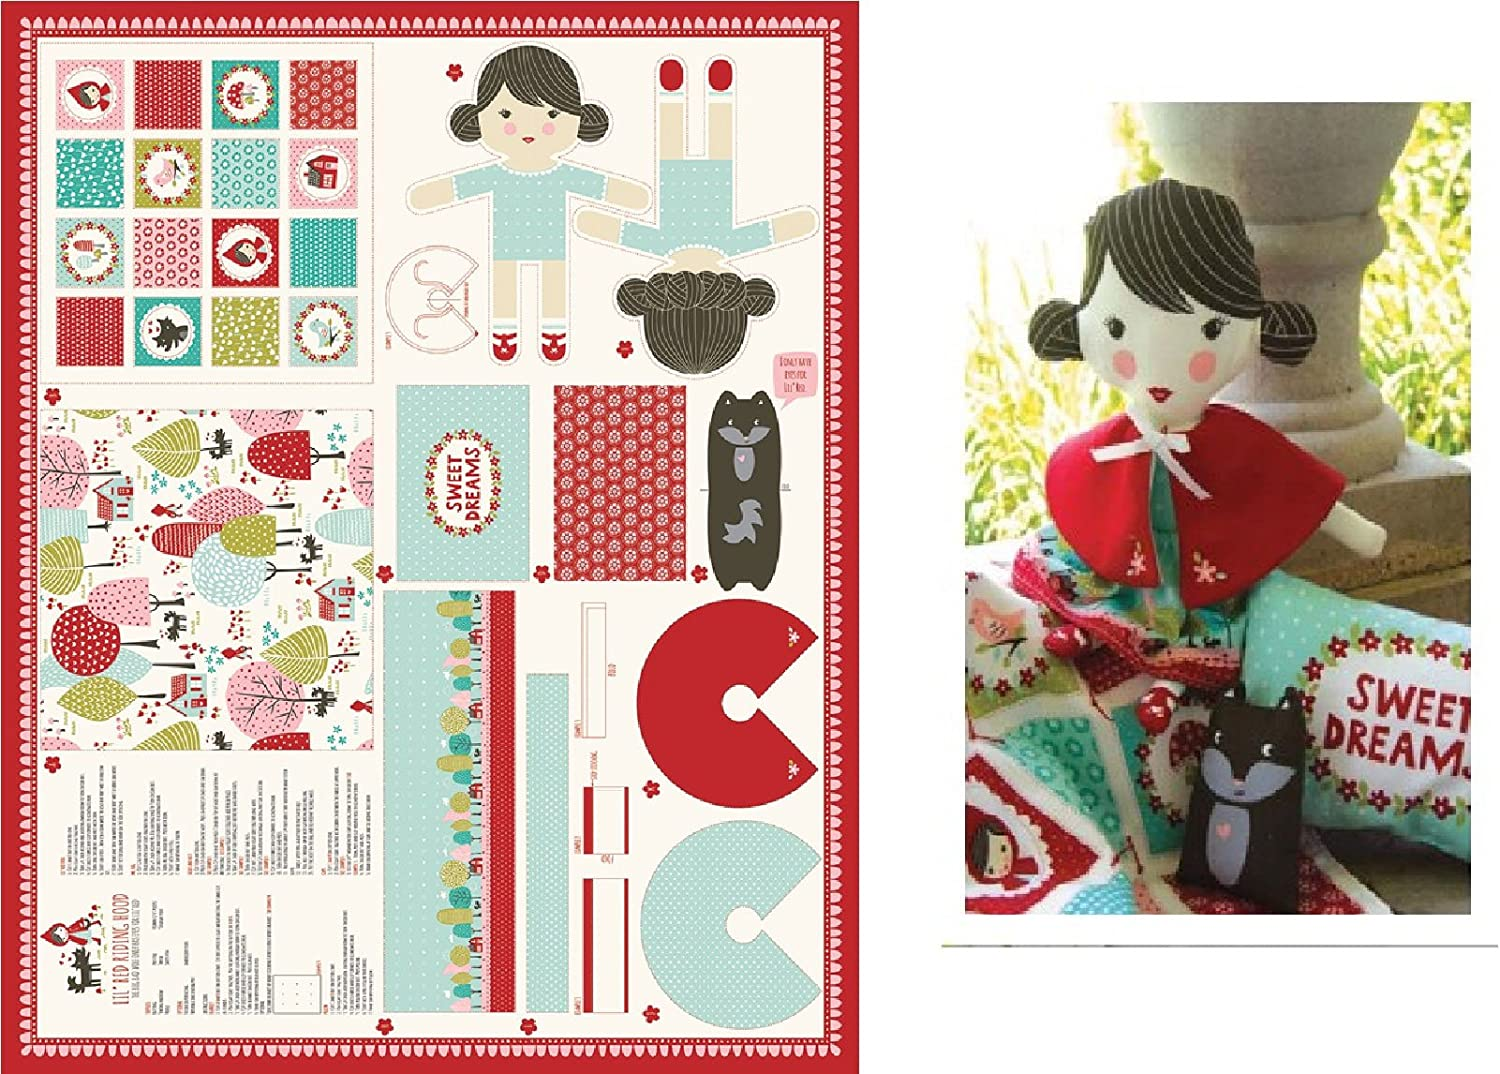 Moda /'Best Friends Forever/' Dolls//Pets//Accessories Toy Sewing Panel Cotton